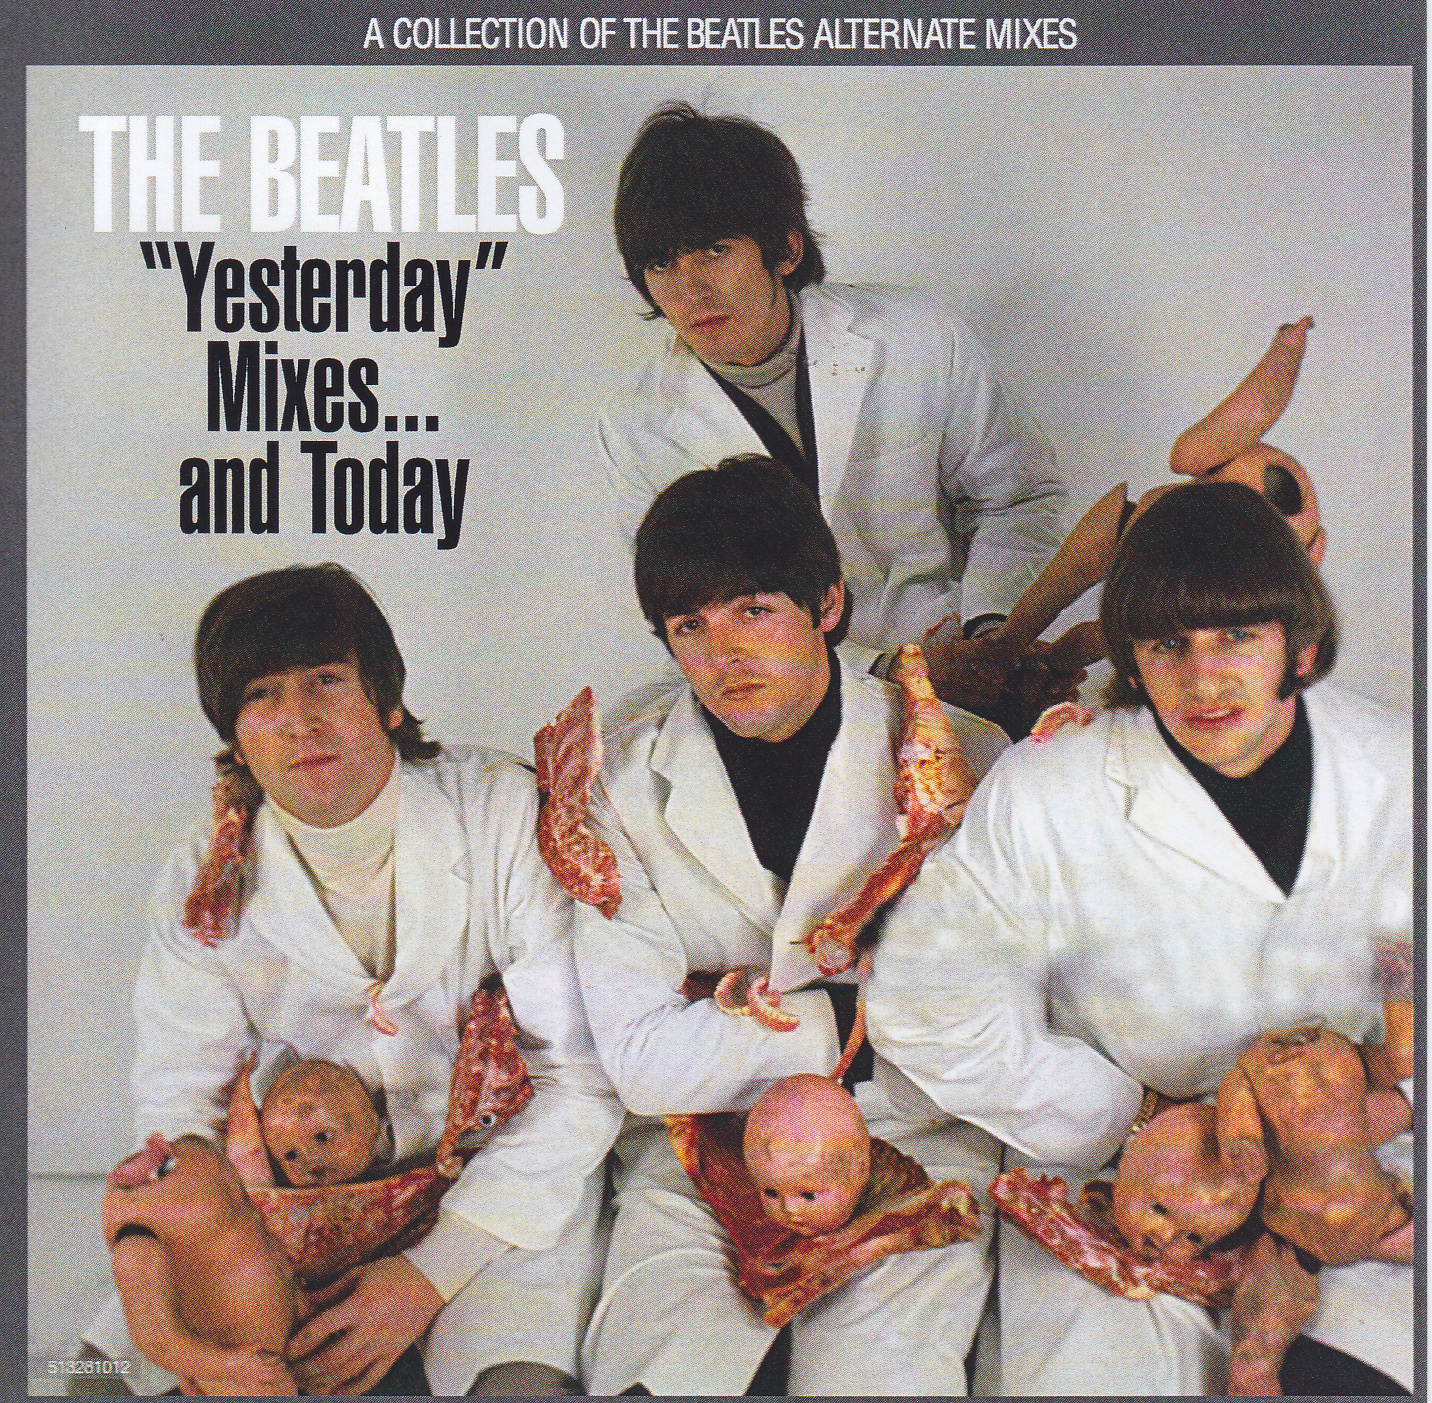 Beatles, The - Yesterday Mixes And Today (1Pro-CDR) Beatfile  BFP-127CDR